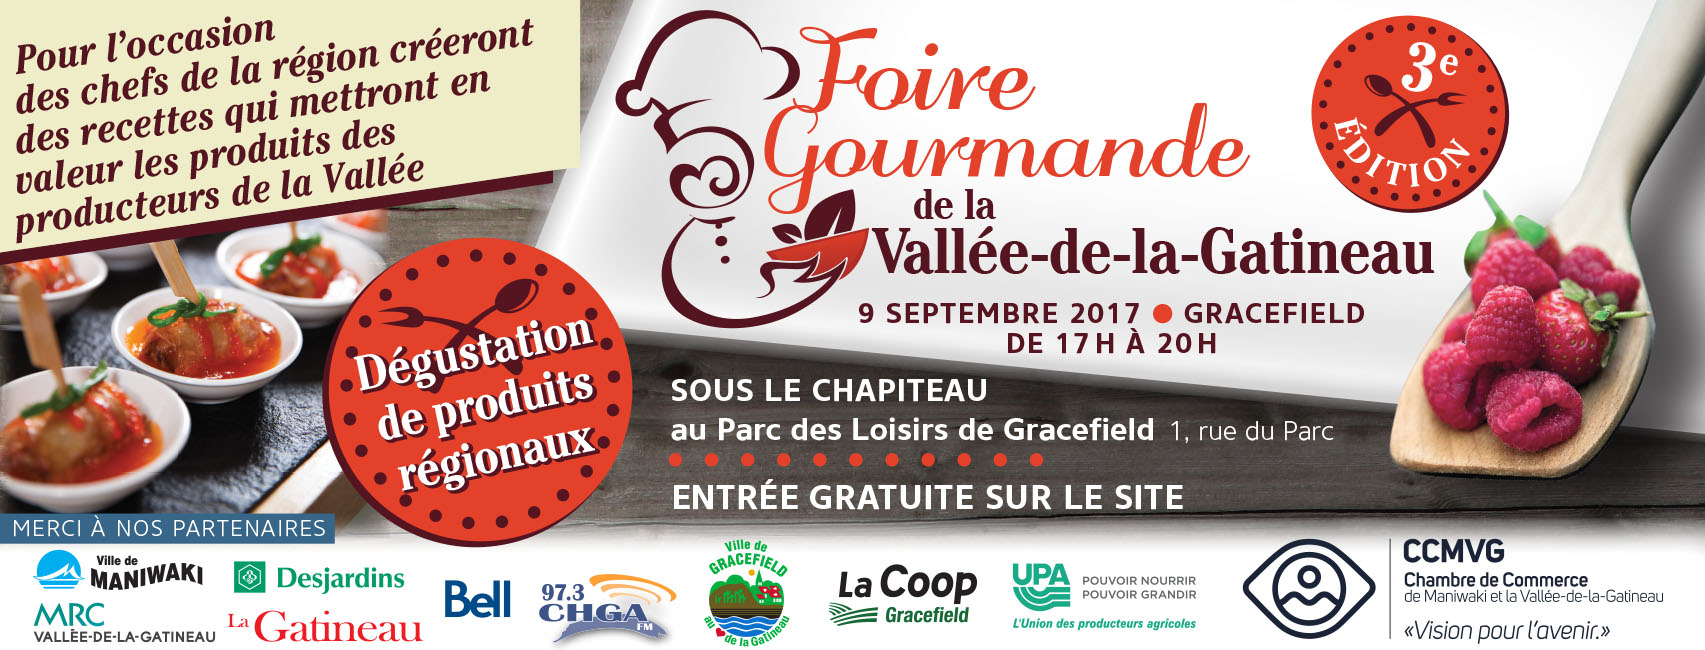 Foire_Gourmande_poster